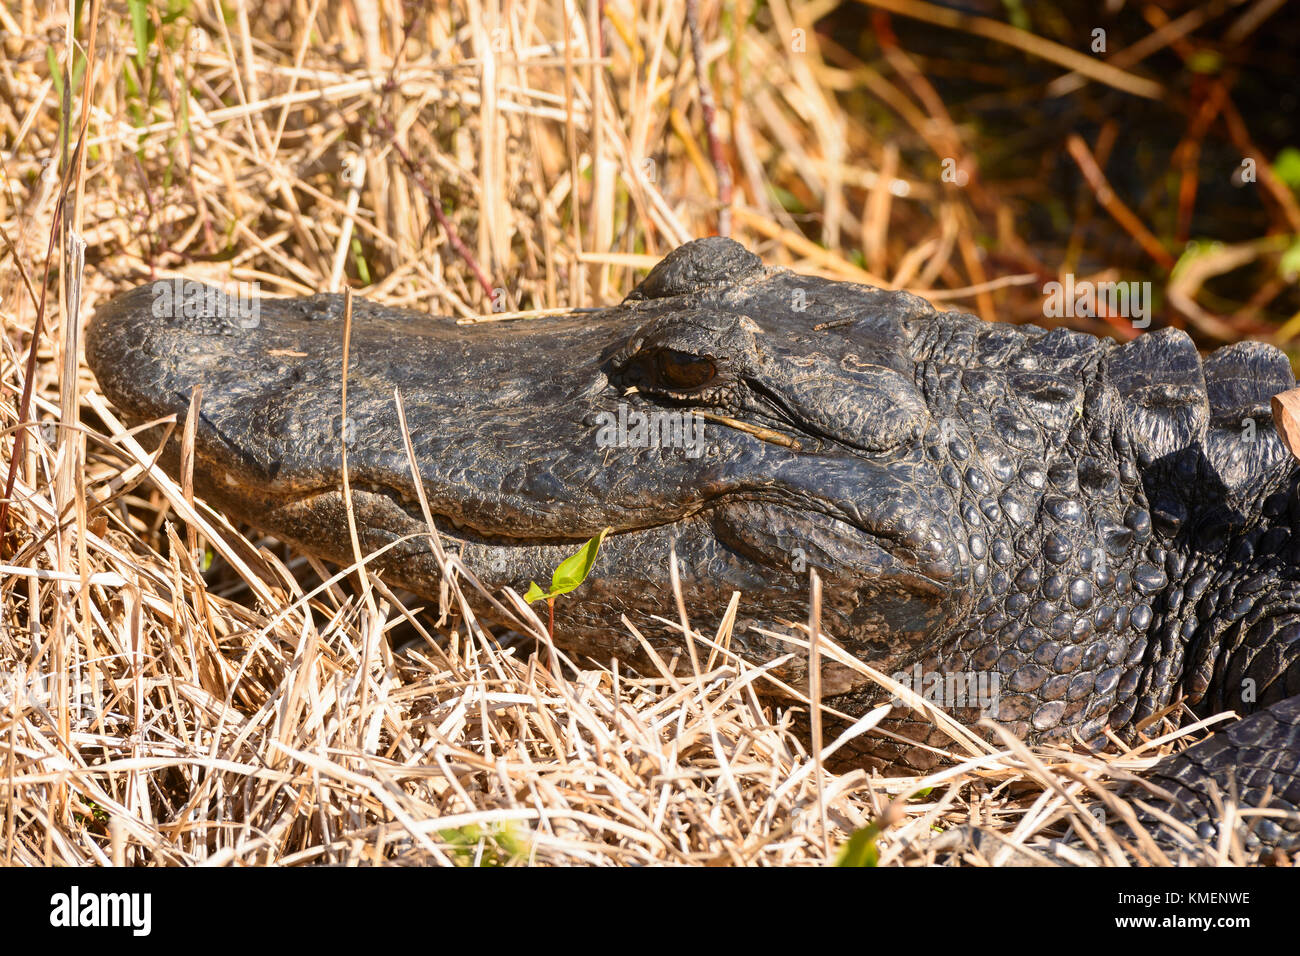 American Alligator in the Everglades along the Anhinga Trail - Stock Image